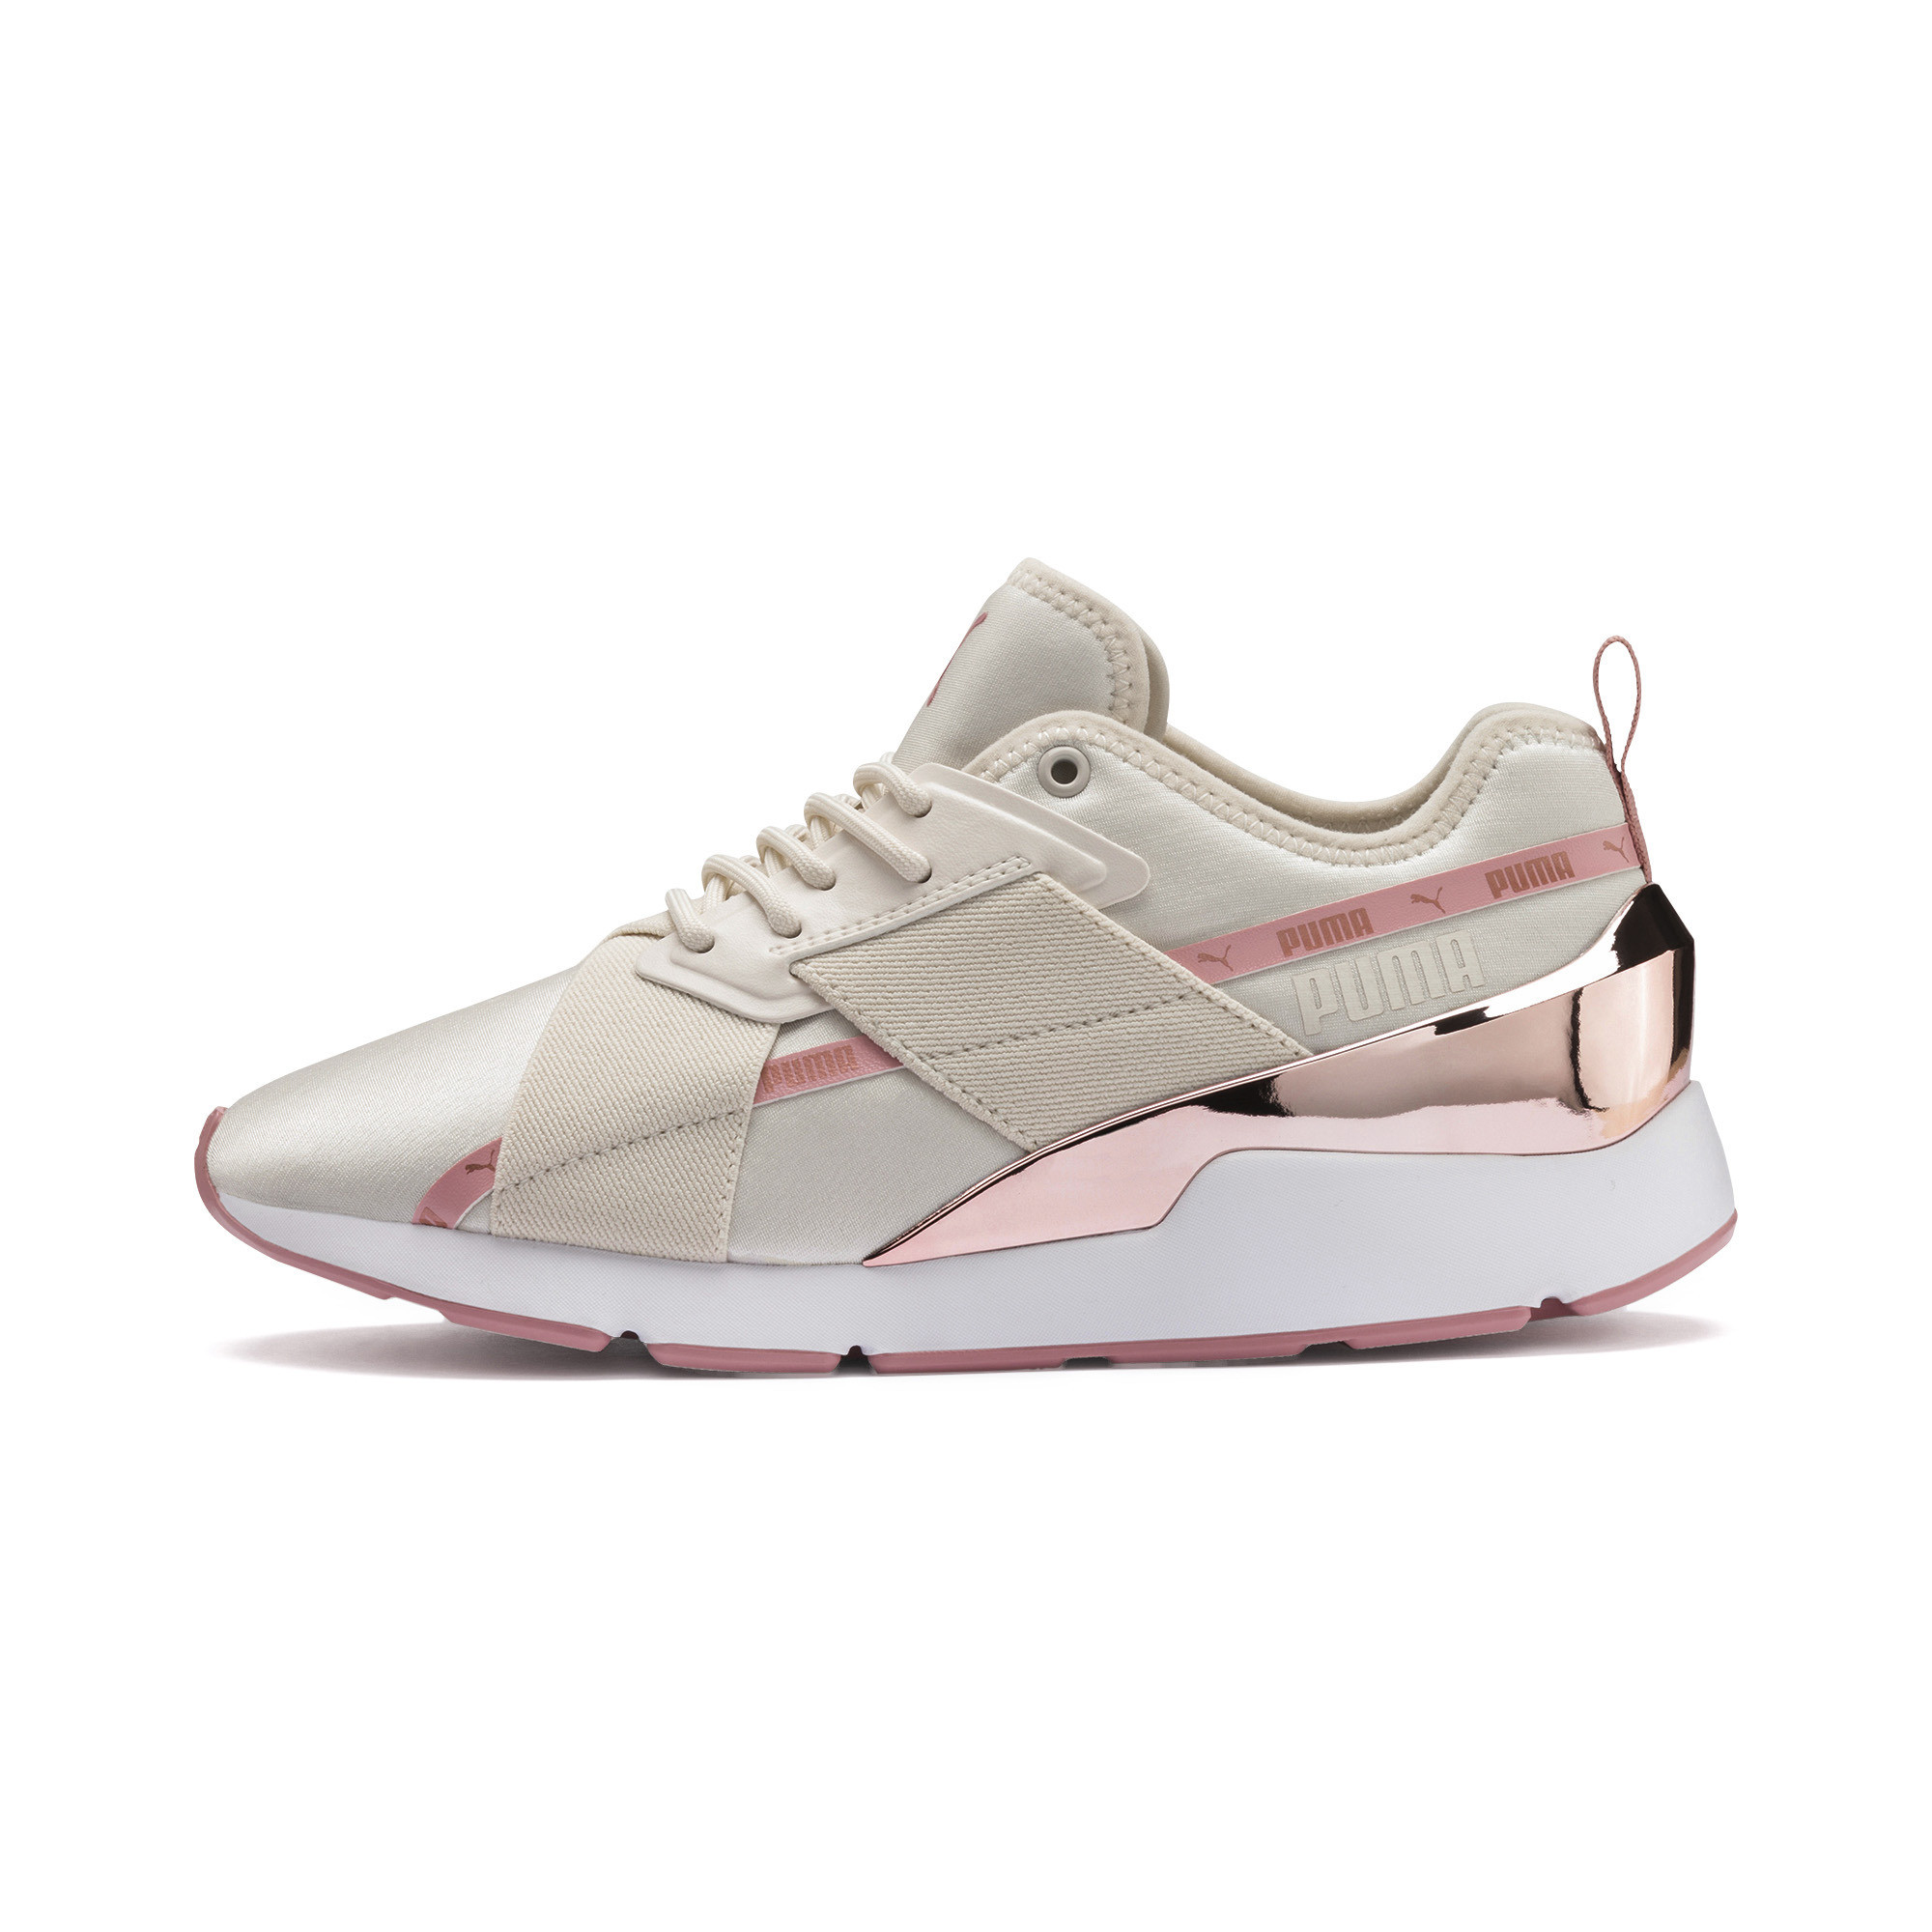 PUMA-Muse-X-2-Metallic-Women-039-s-Sneakers-Women-Shoe-Evolution thumbnail 11